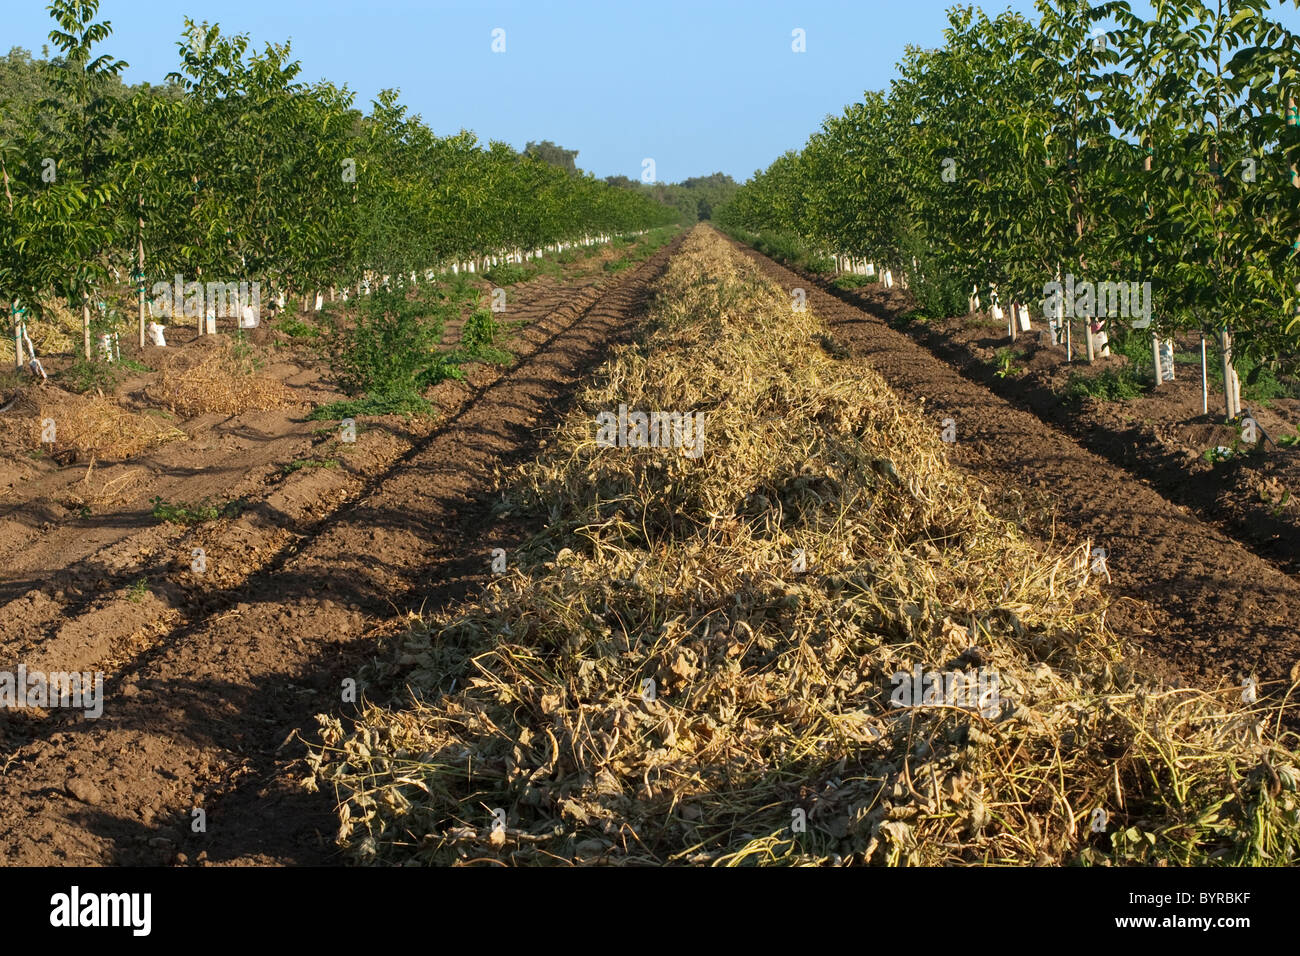 Kidney beans, cut and windrowed for drying before harvest, grown between rows of newly planted walnut trees / California, - Stock Image